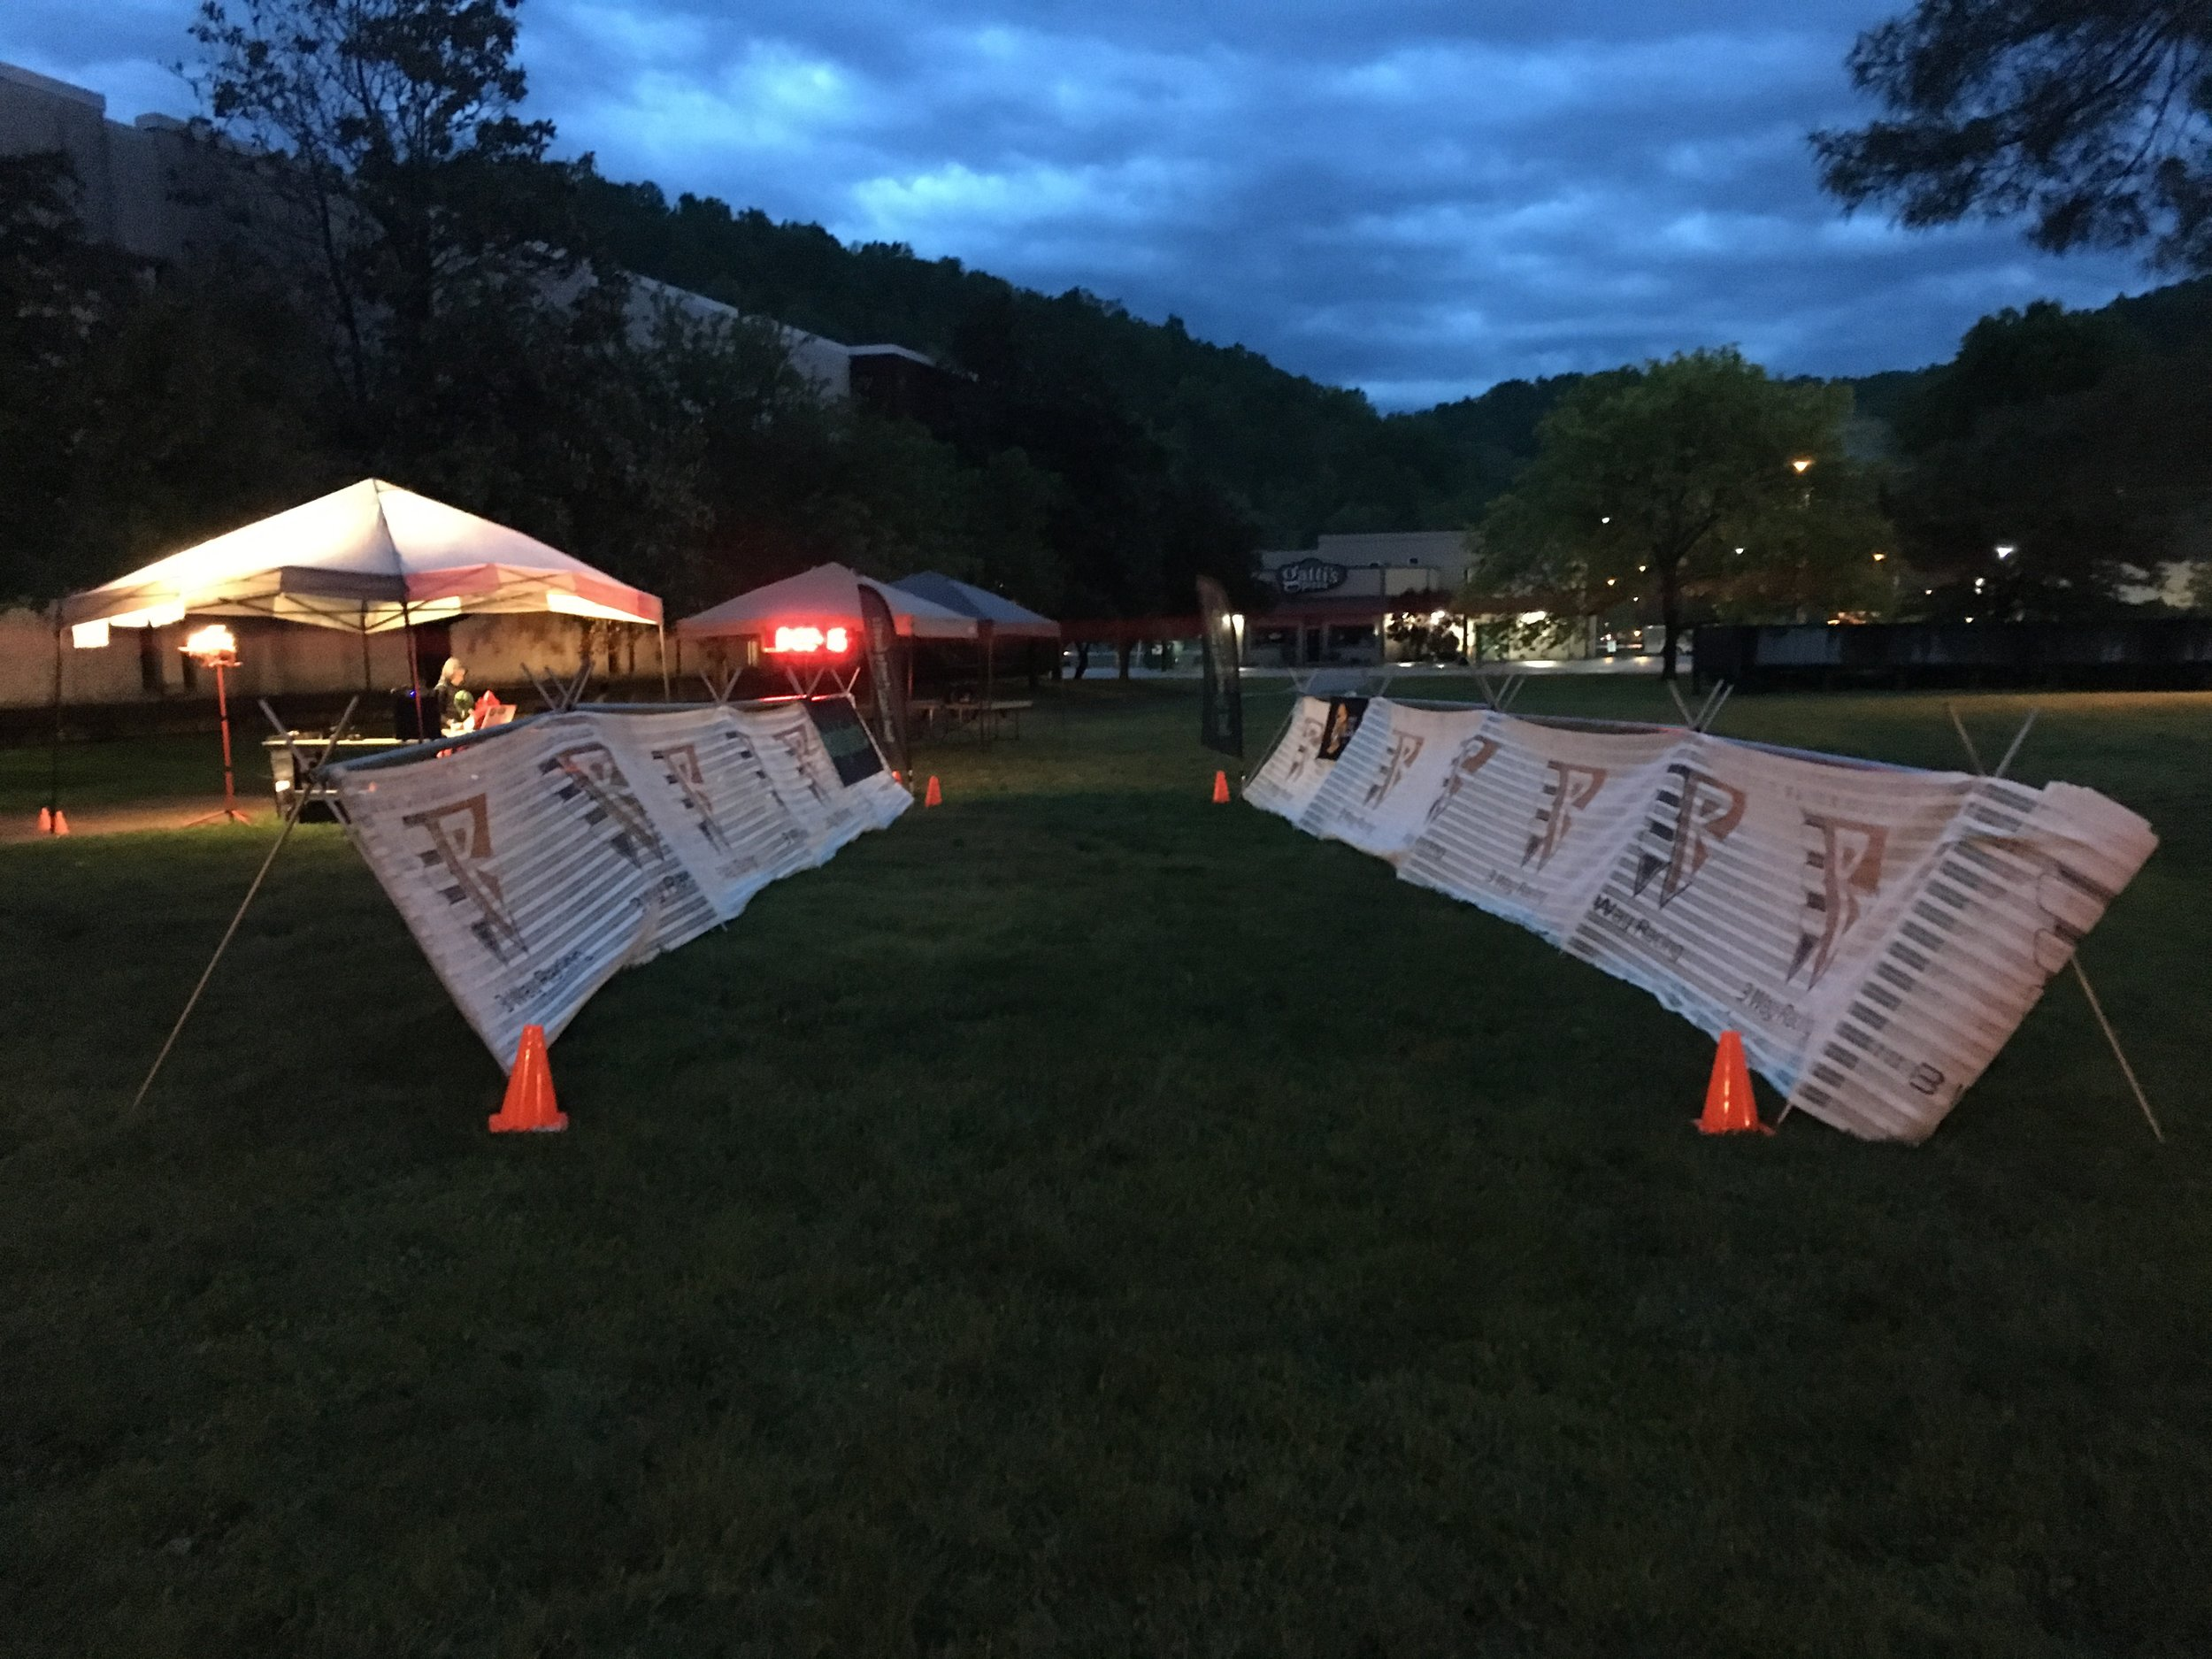 Dawn breaks over Morehead, Kentucky for the 2017 Big Turtle 50 Miler